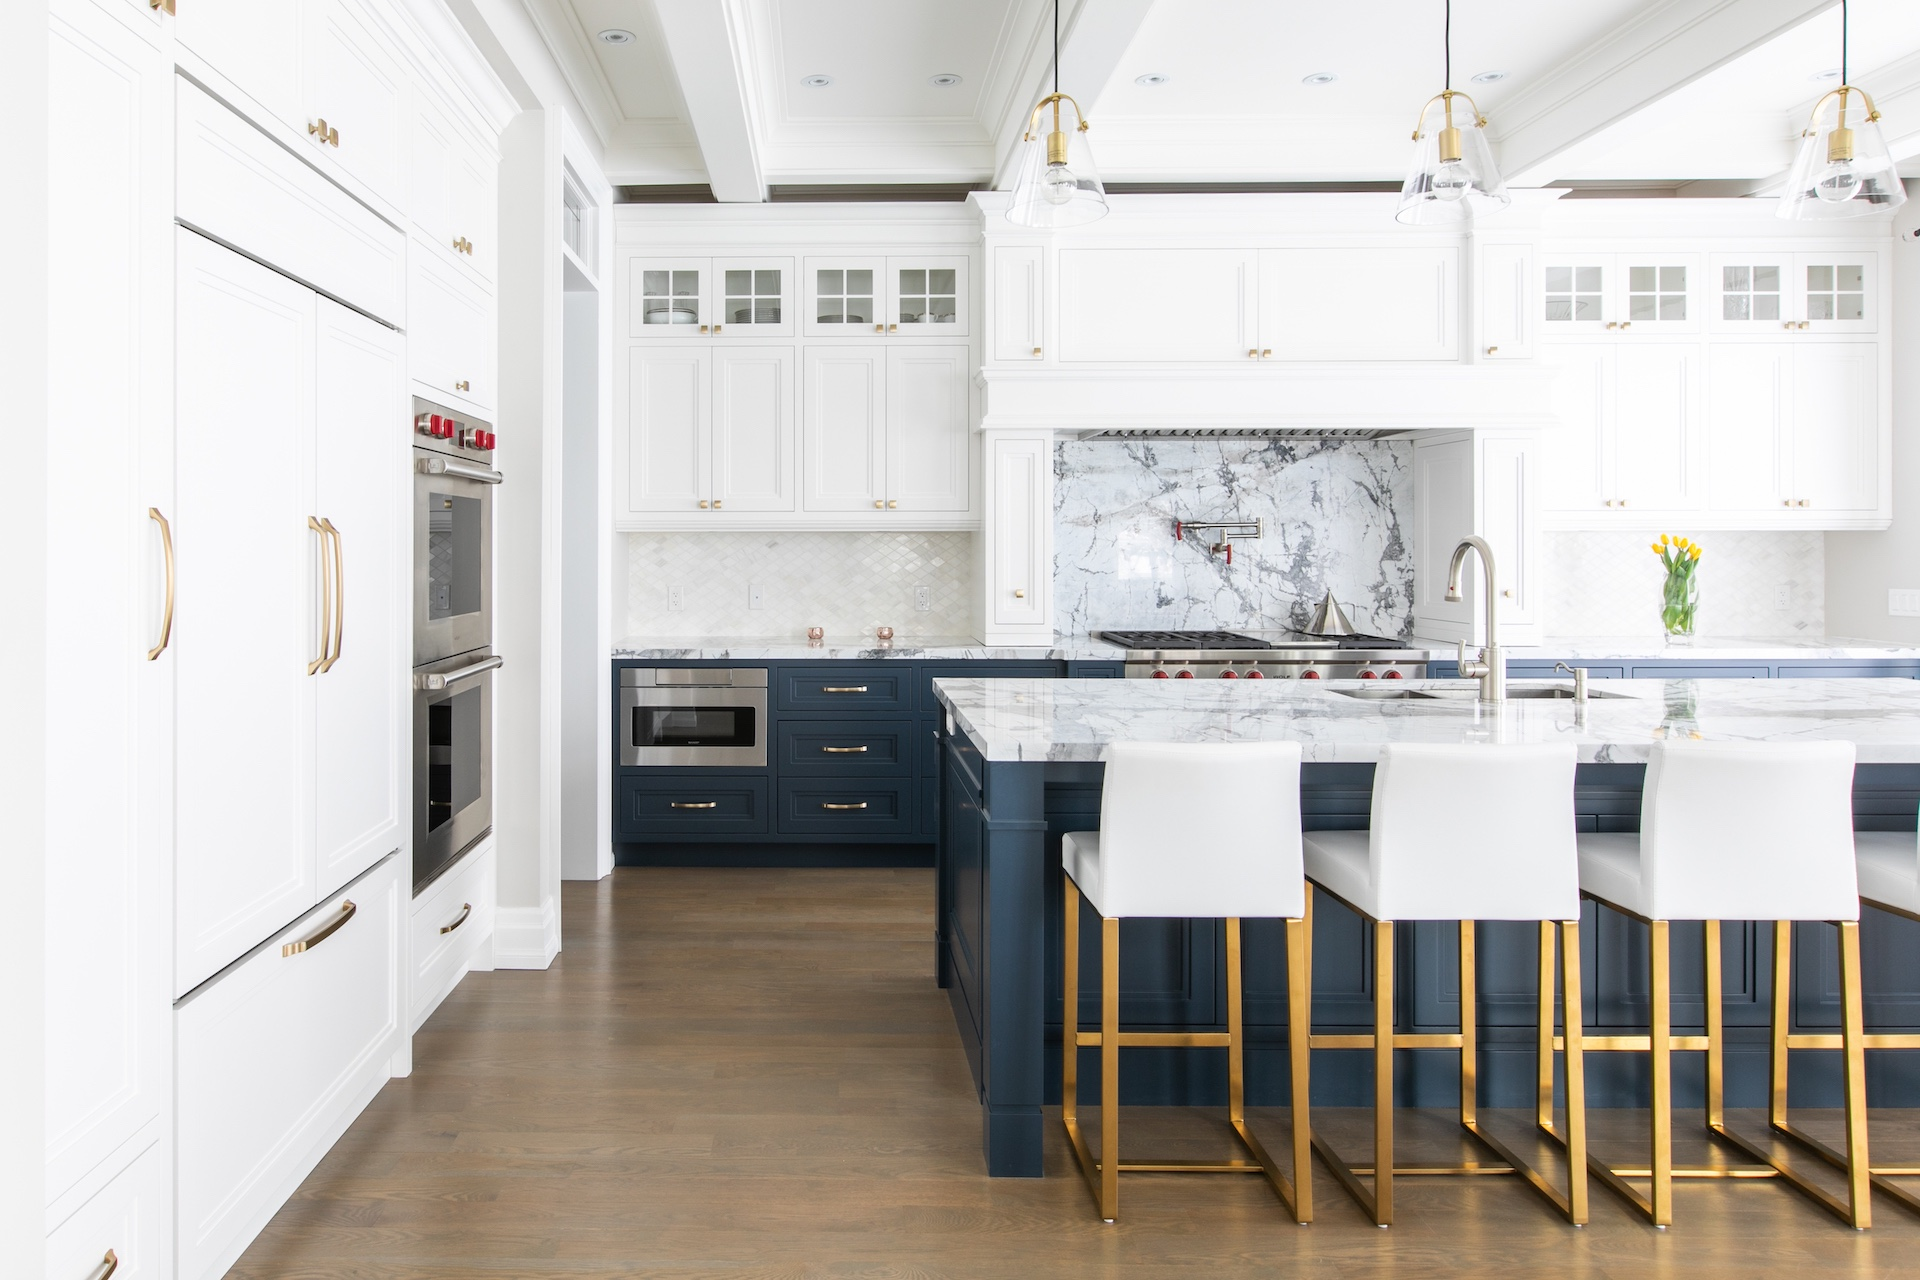 Kitchen with sink, bar stools and marble counter